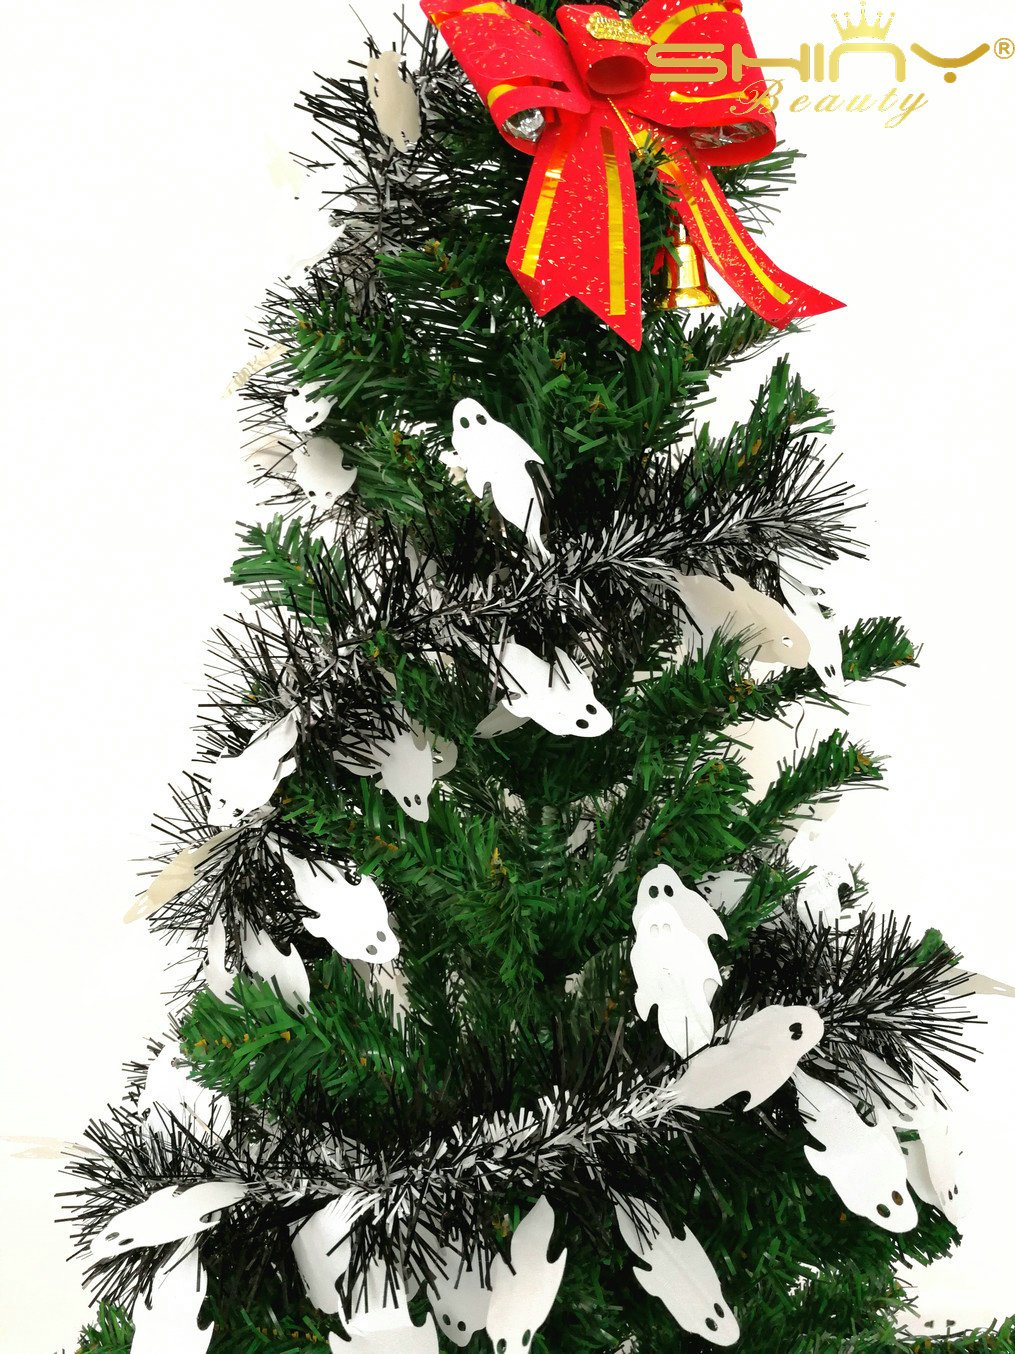 5 Pieces Tinse Garland For Halloween Tree or Door Windows Decoration, Shinny Party Accessory TG004